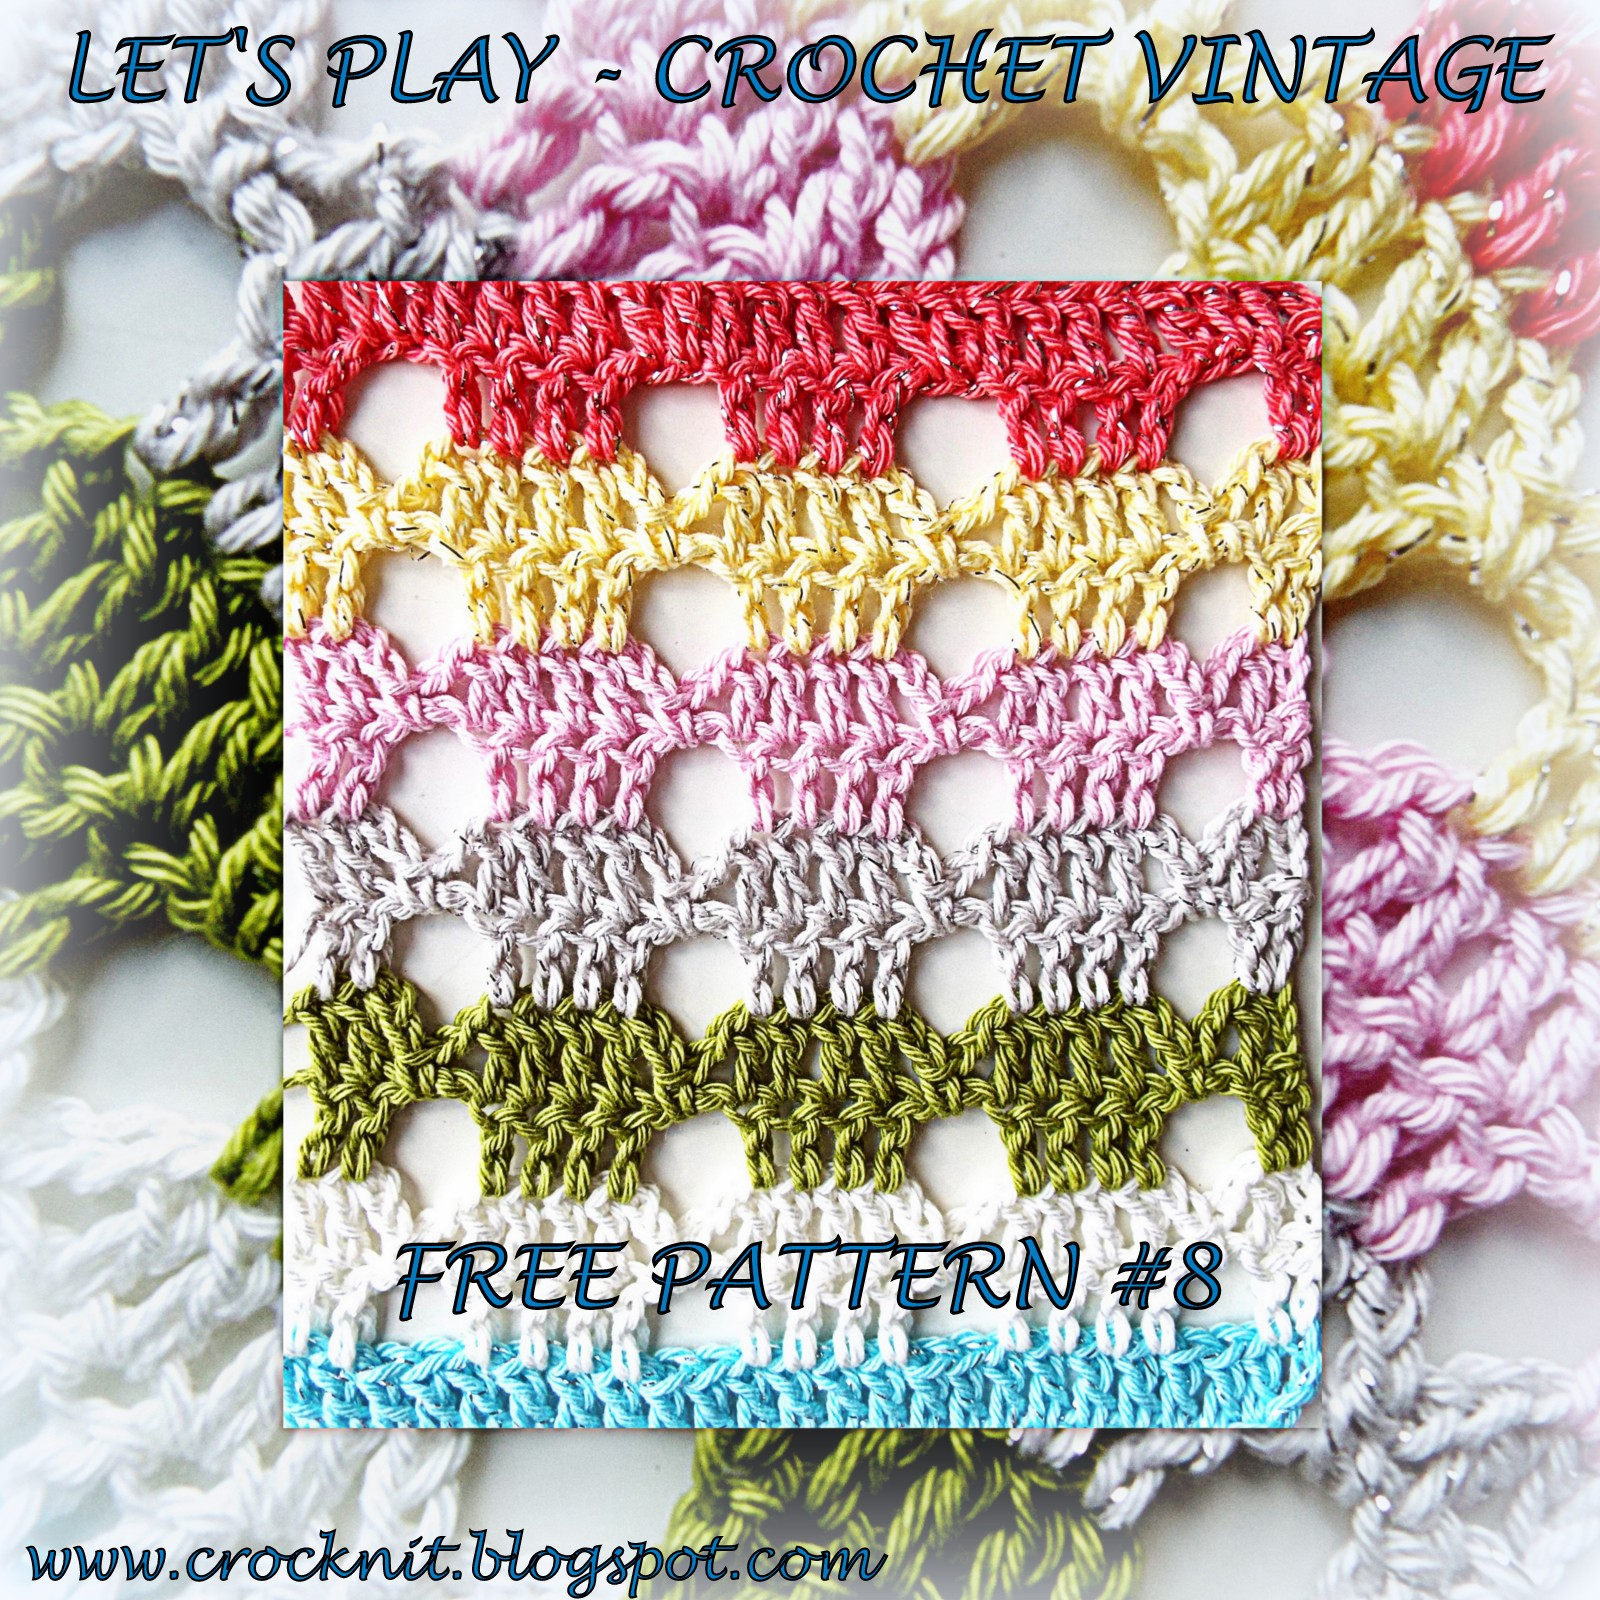 Microcknit Creations Lets Play Crochet Vintage Free Pattern 8